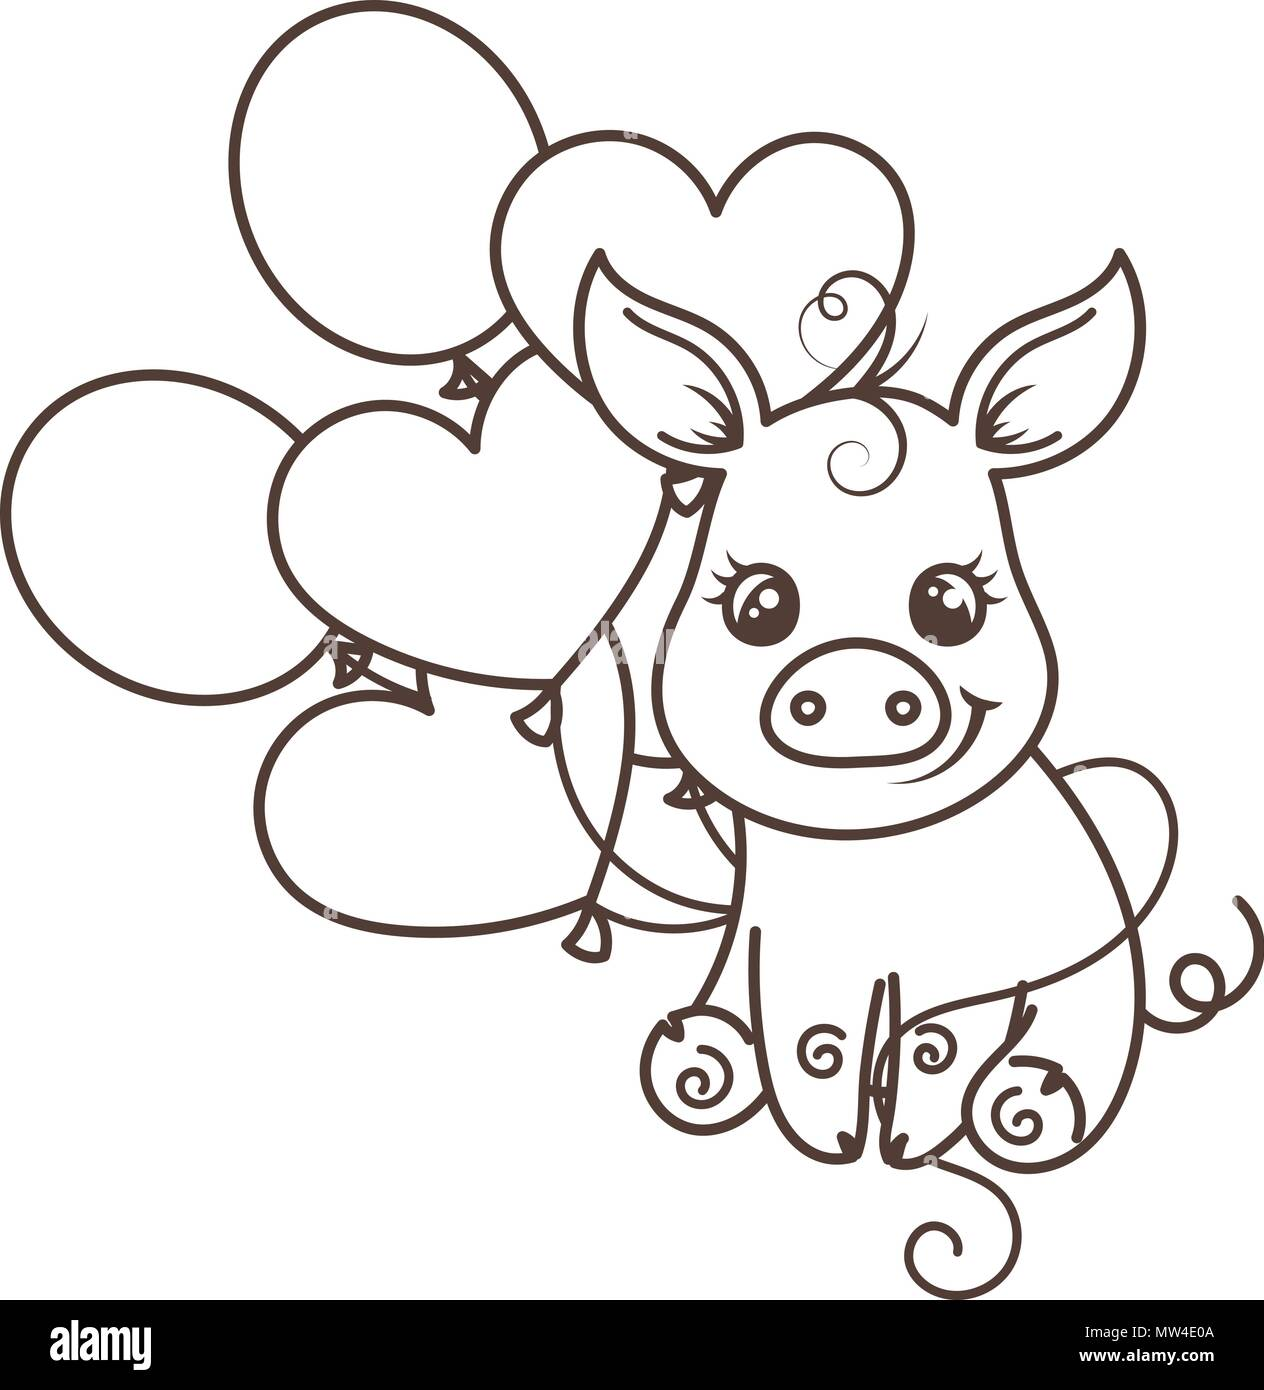 Greeting Card With Cute Cartoon Pig With Balloons Coloring Page Stock Vector Image Art Alamy